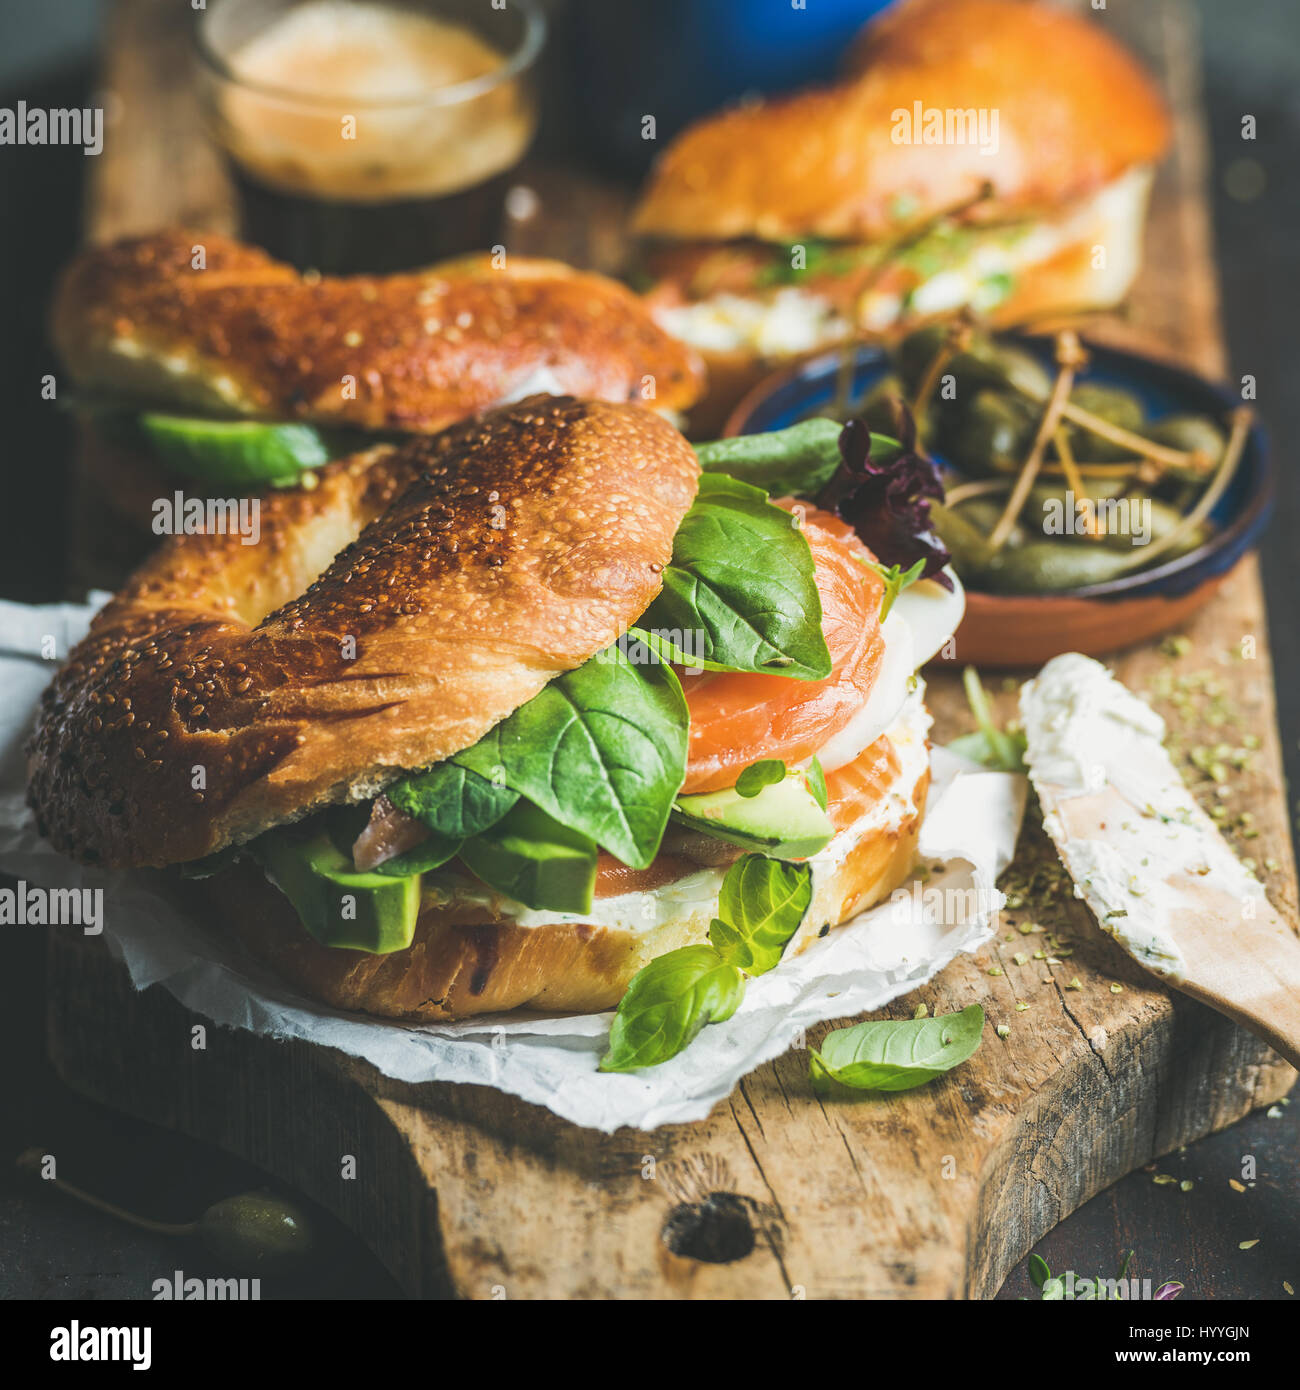 Healthy breakfast with bagels and espresso coffee - Stock Image